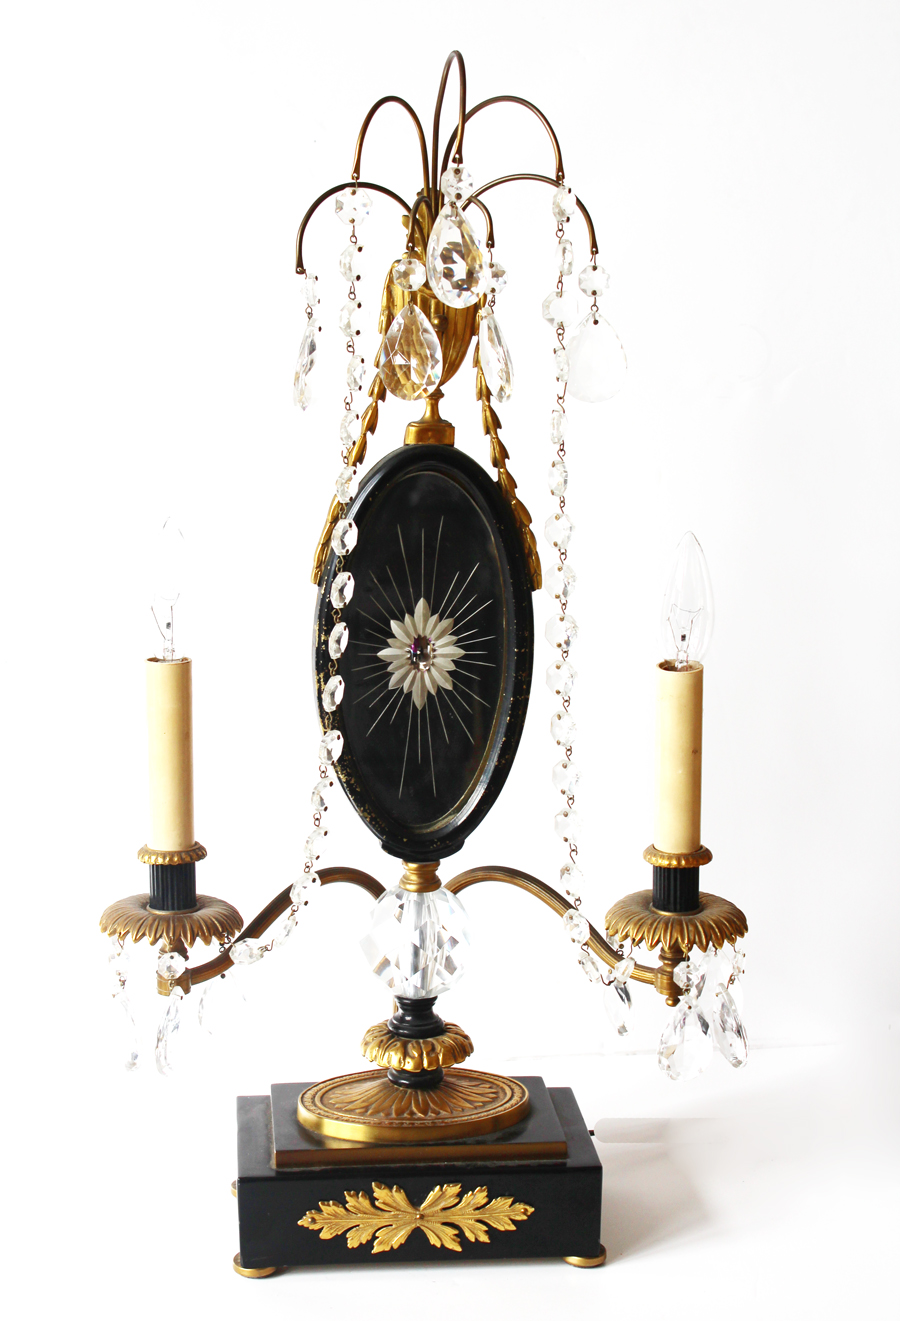 Antique Bronze Ormolu & Crystal Candelabra Girandole Lamp-